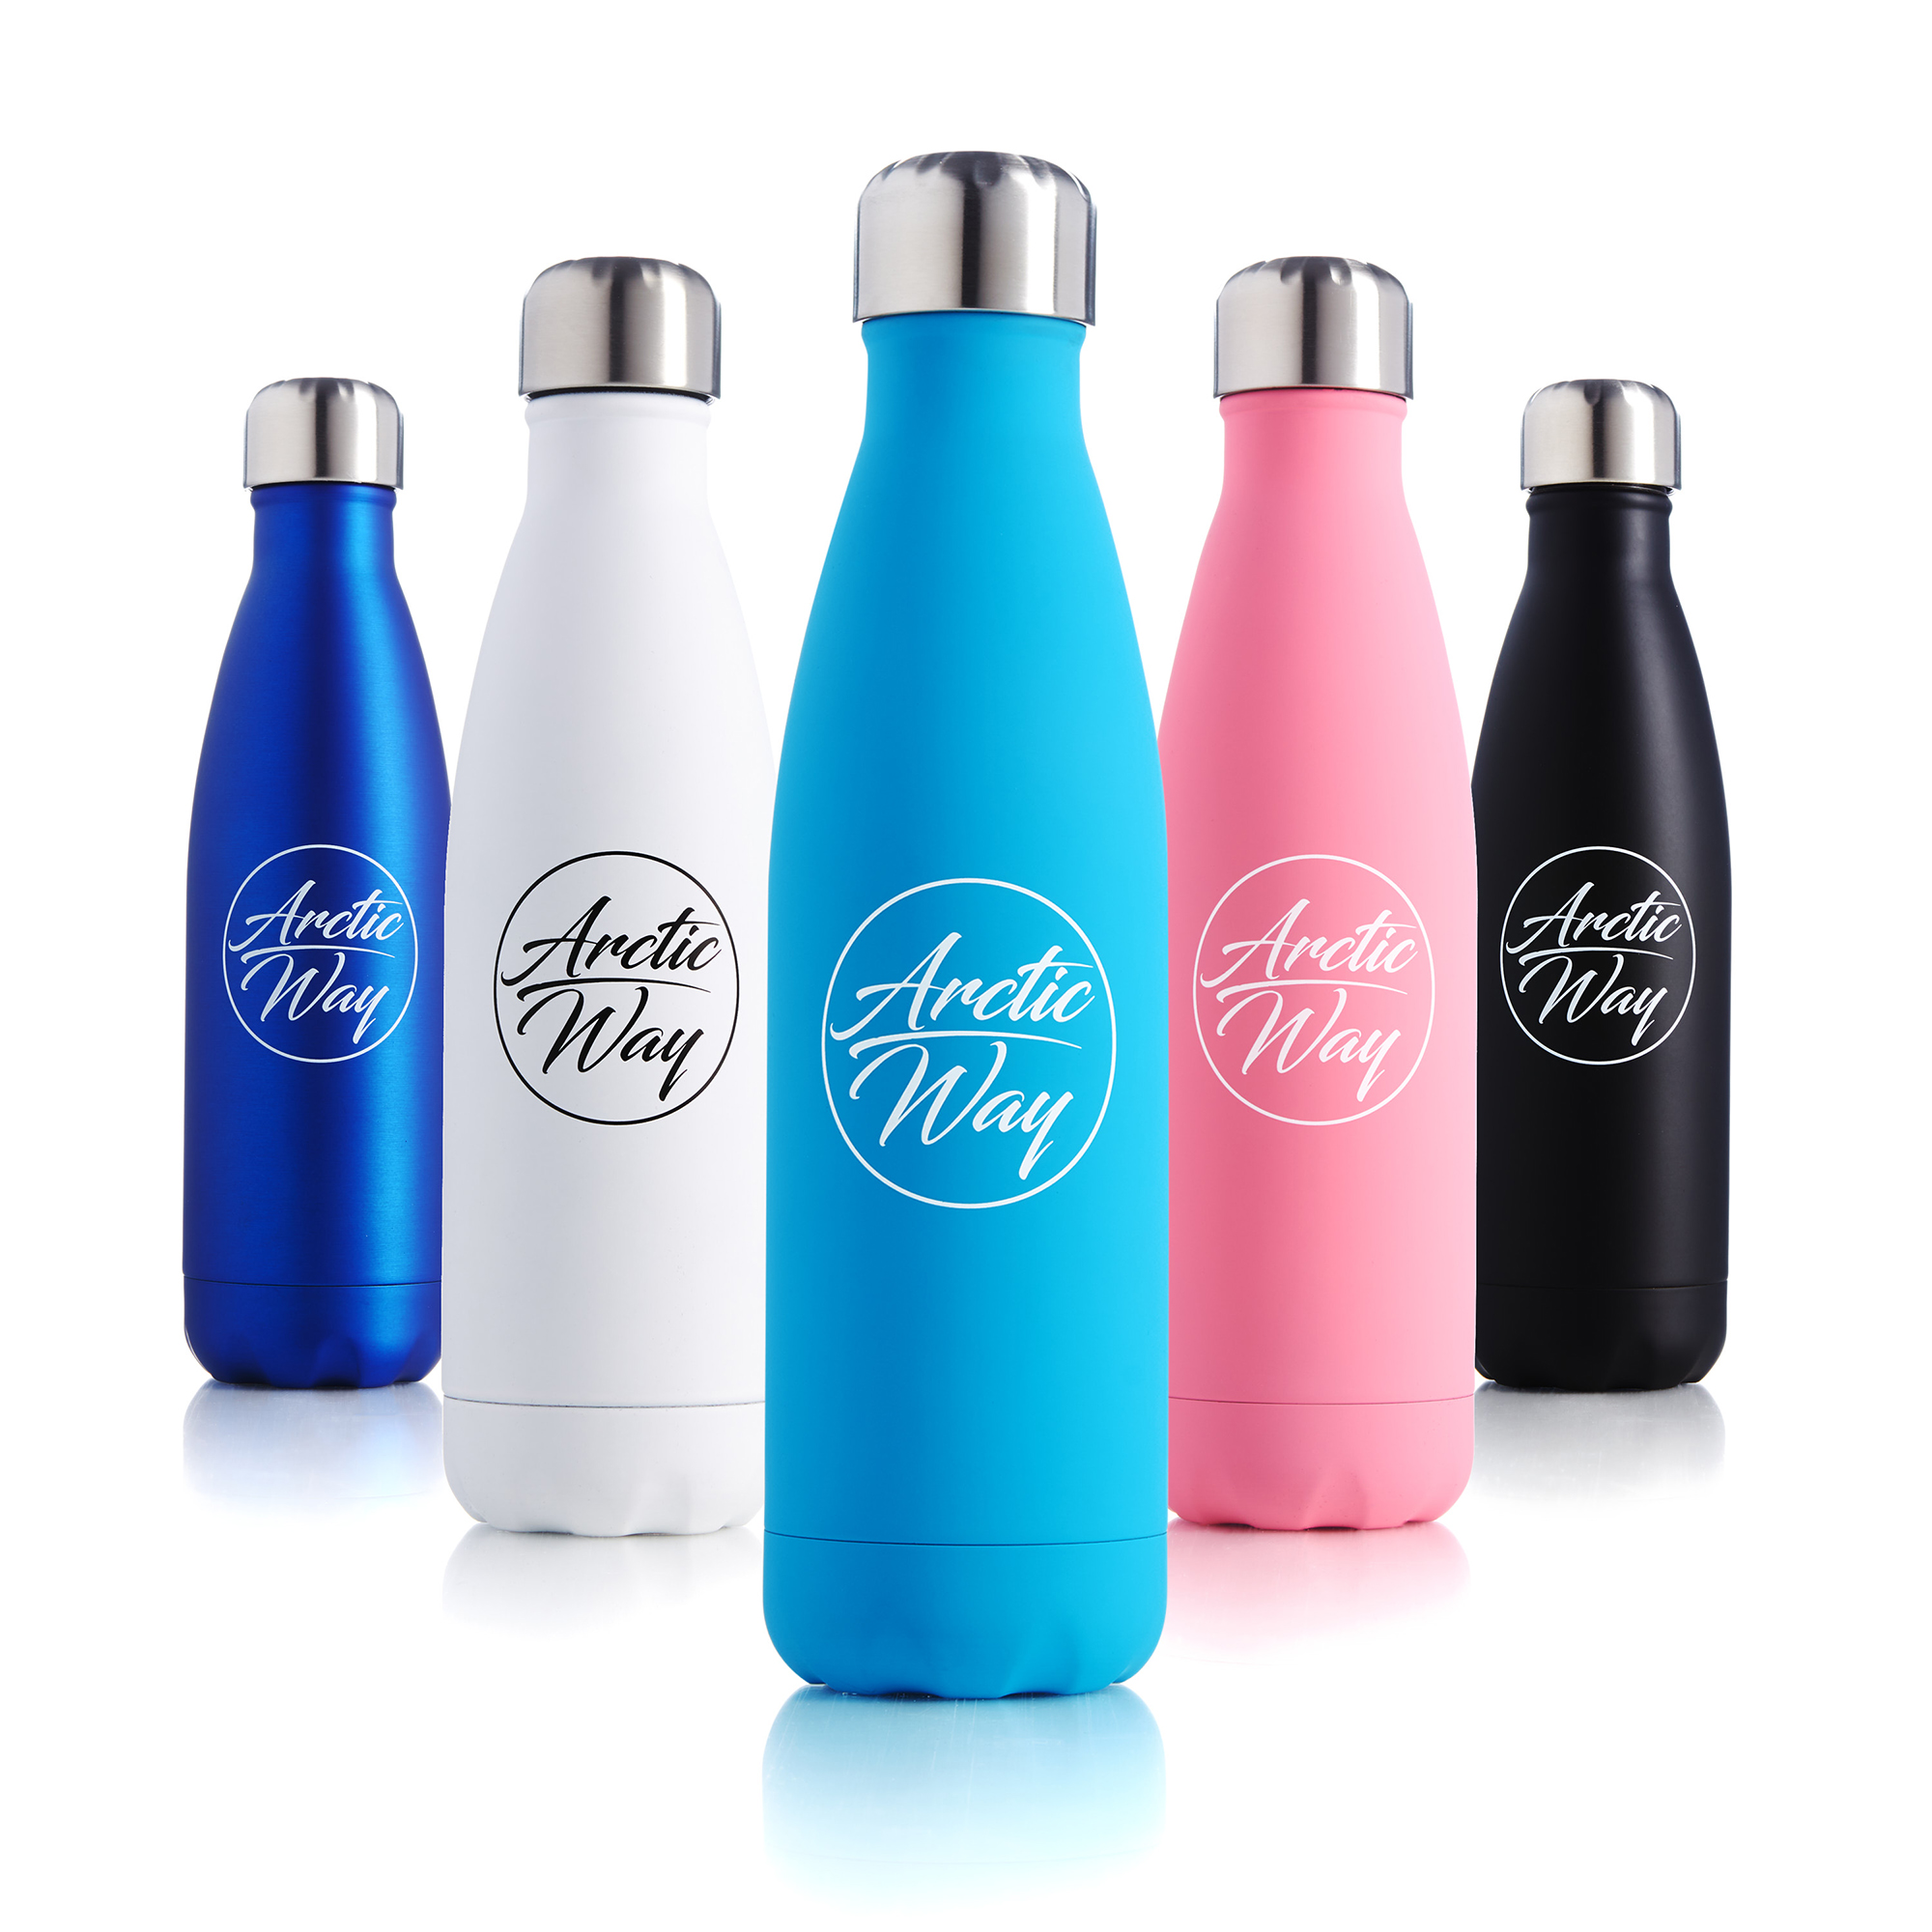 Packshot Image of drinks bottles on pure white for websites and Amazon use by UK product photographer Ian Knaggs